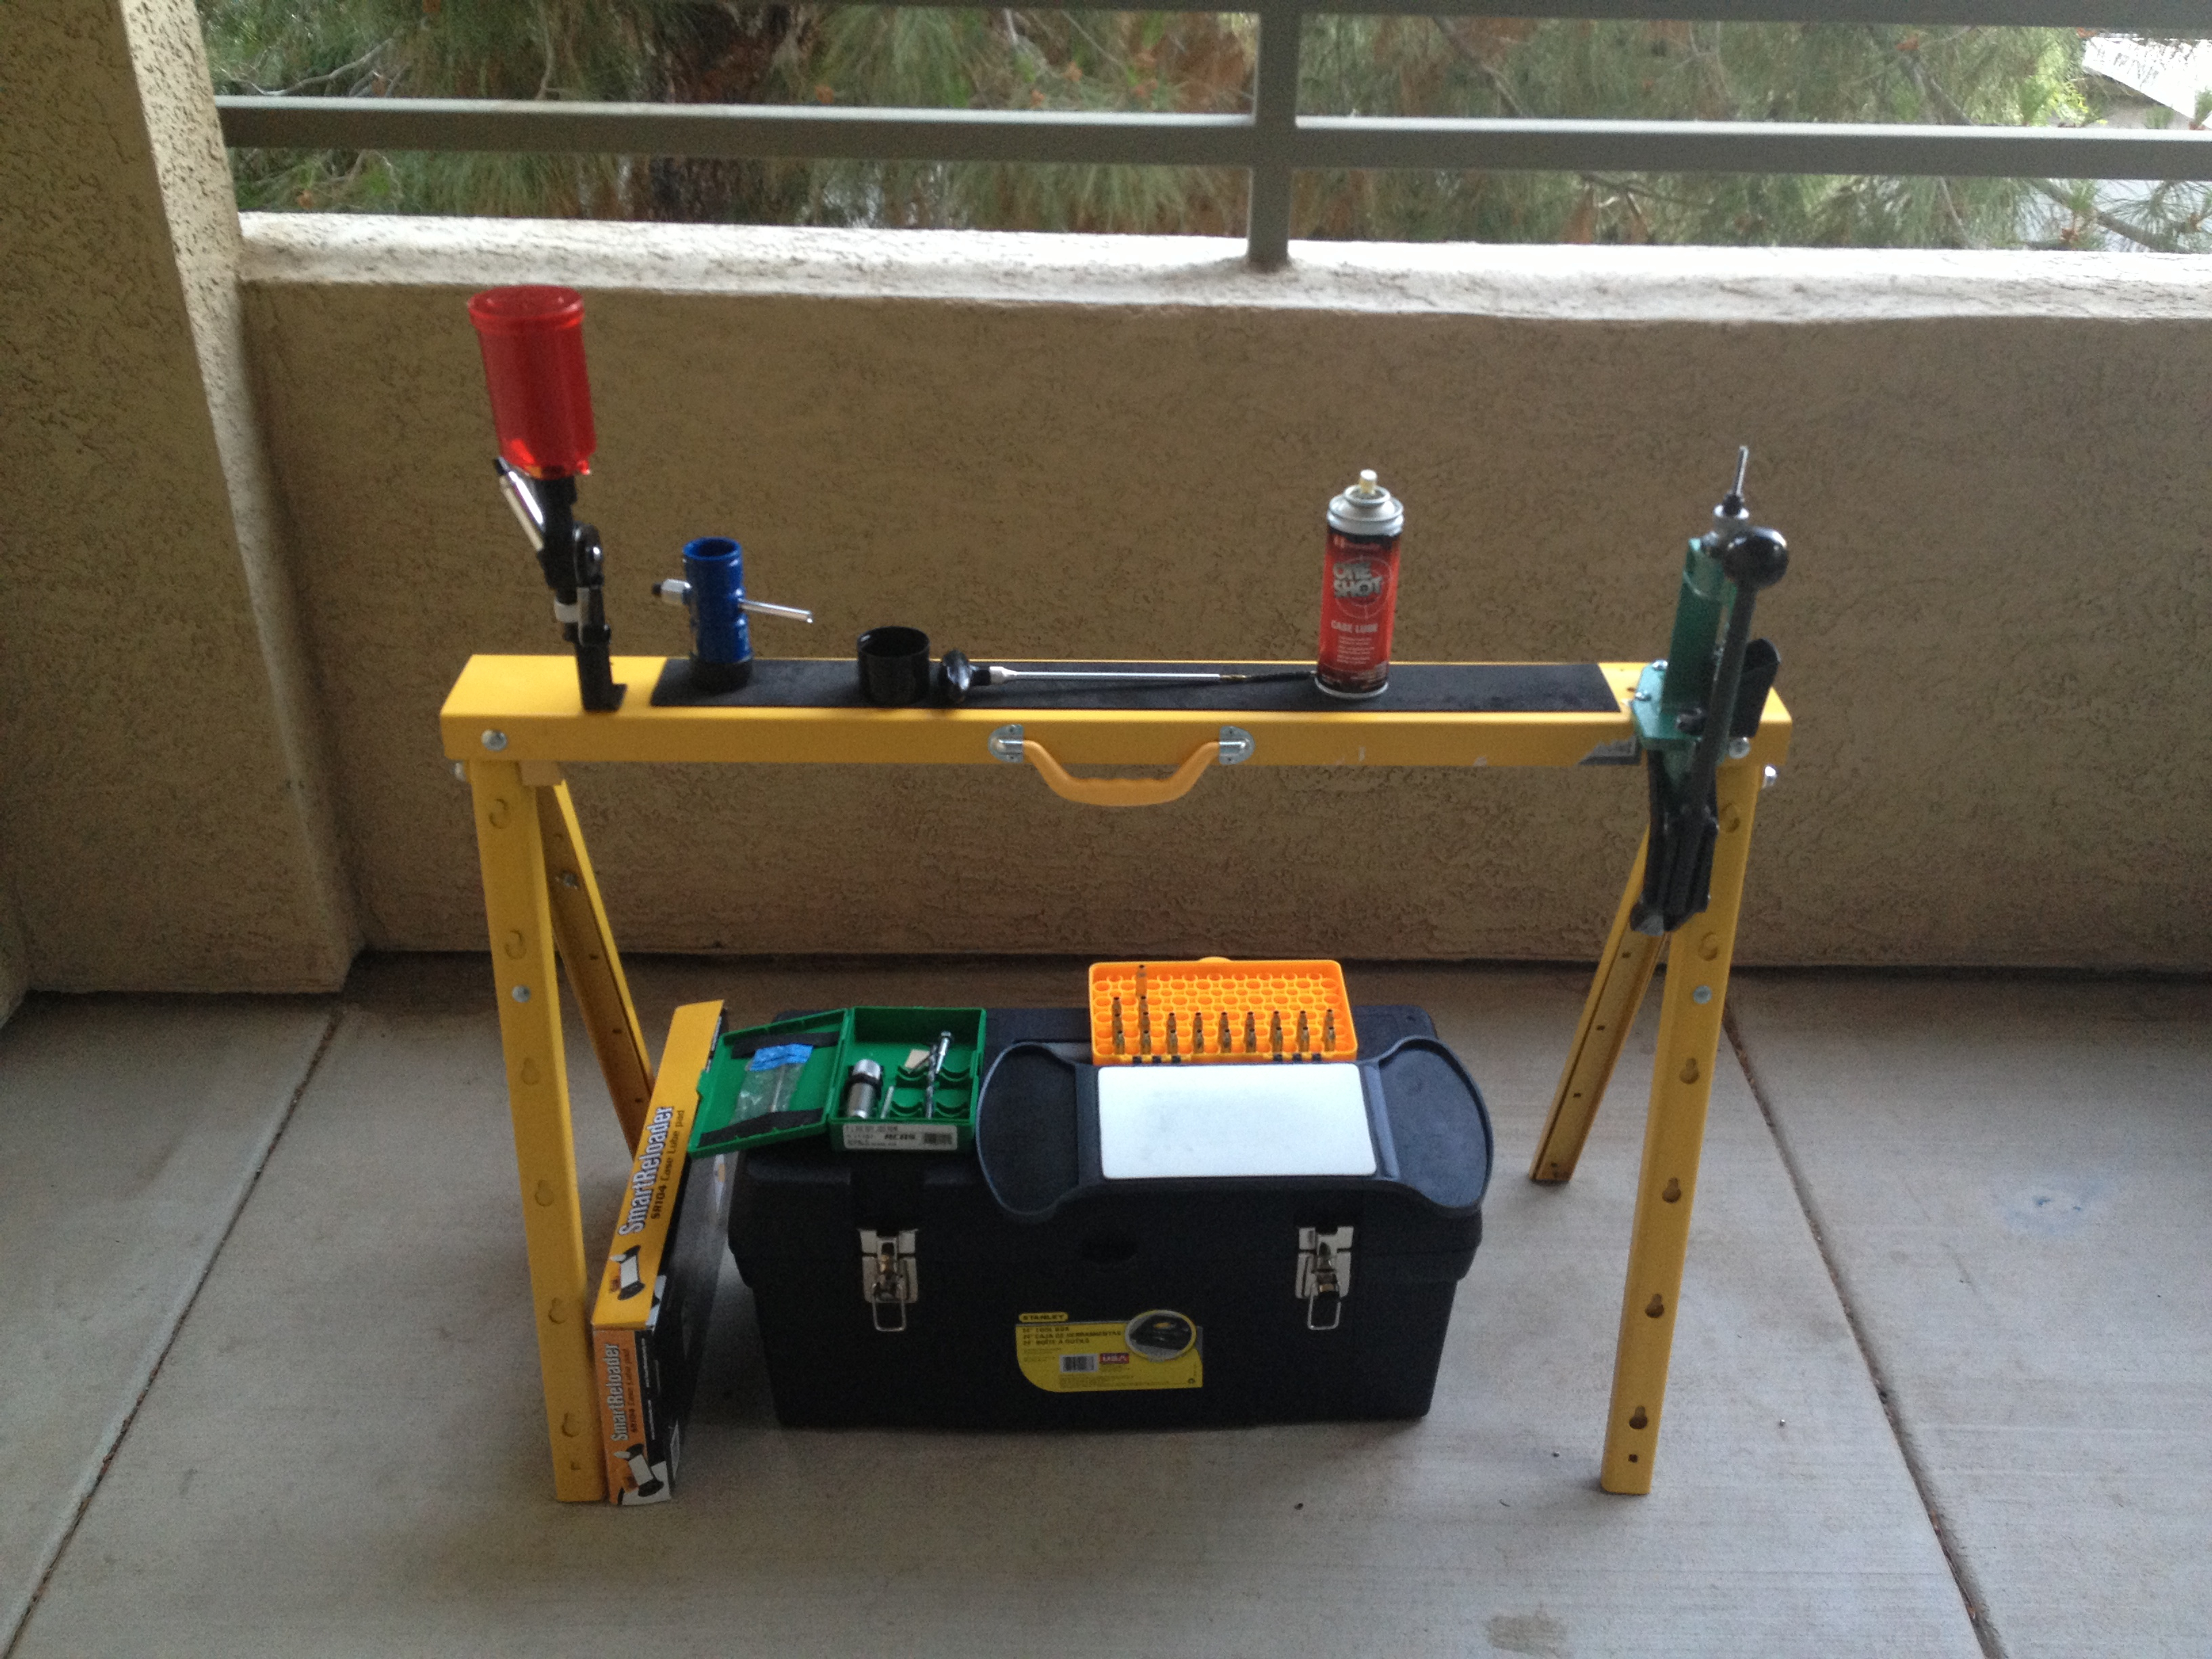 Reloading Benches | Reloading Bench Ideas | Reloading Benches